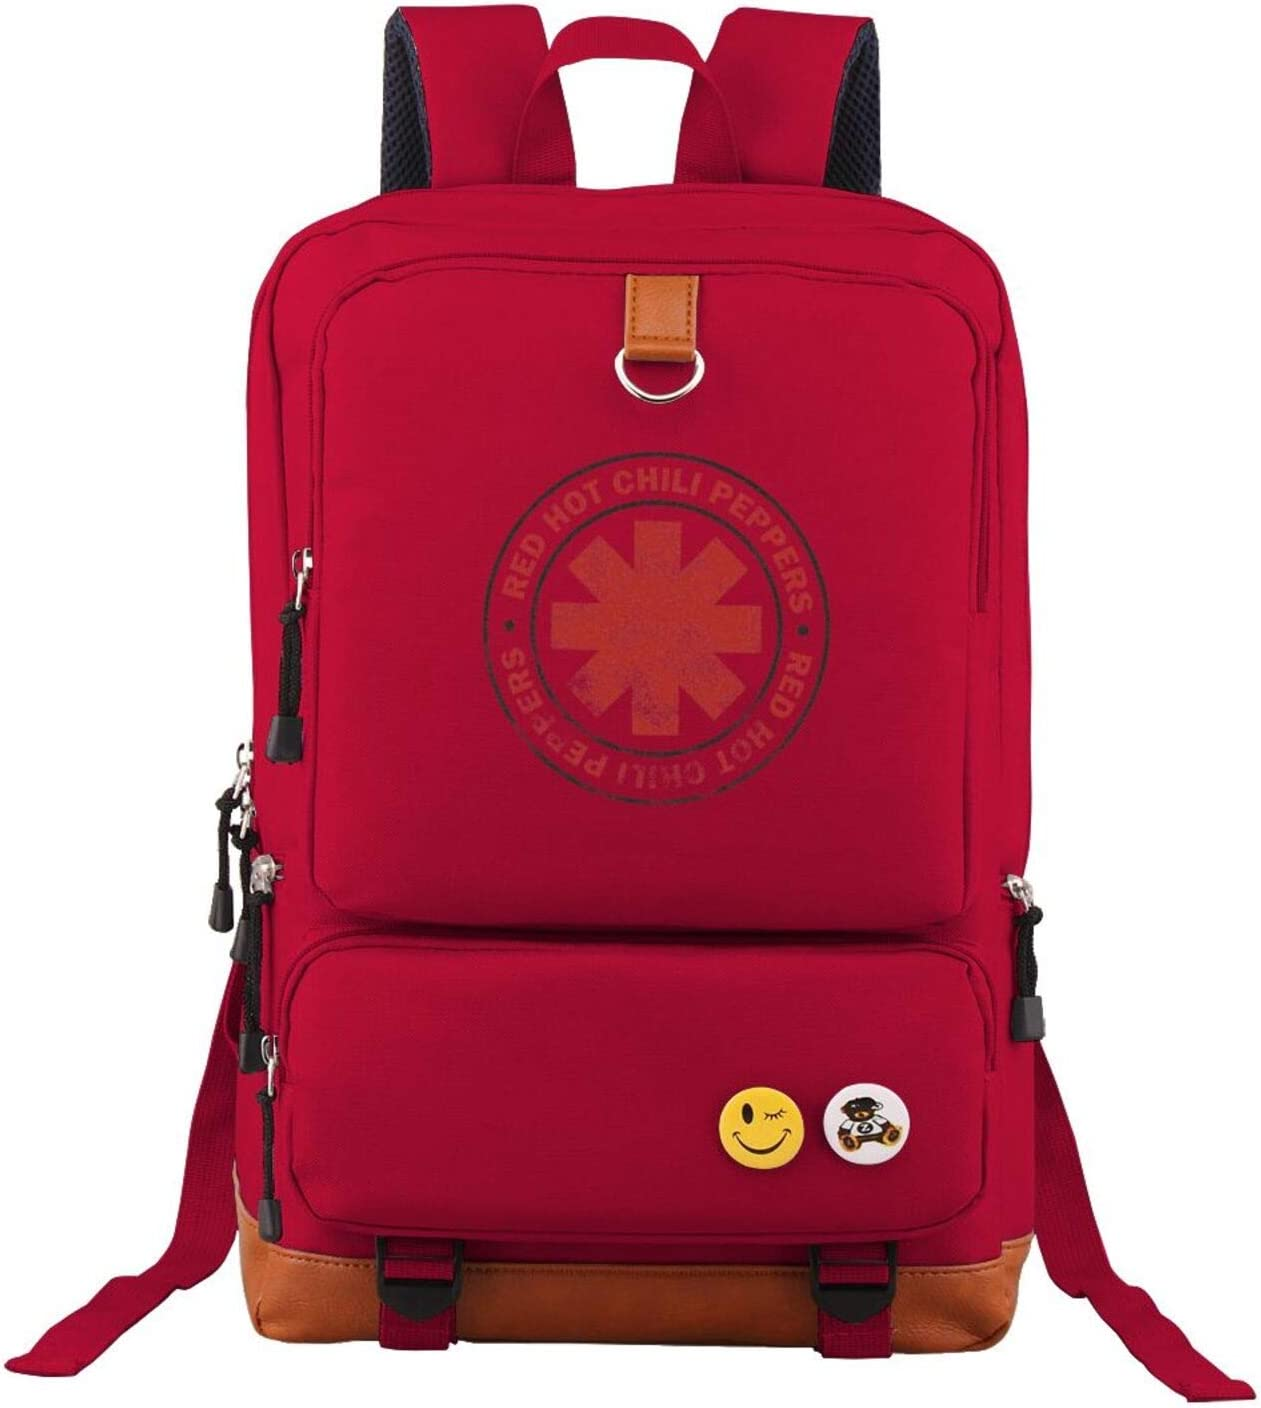 Red Unisex Red Hot Chili Peppers Backpack Vintage Laptop Backpack Anti-Theft Water Resistant Bag Casual College Backpack